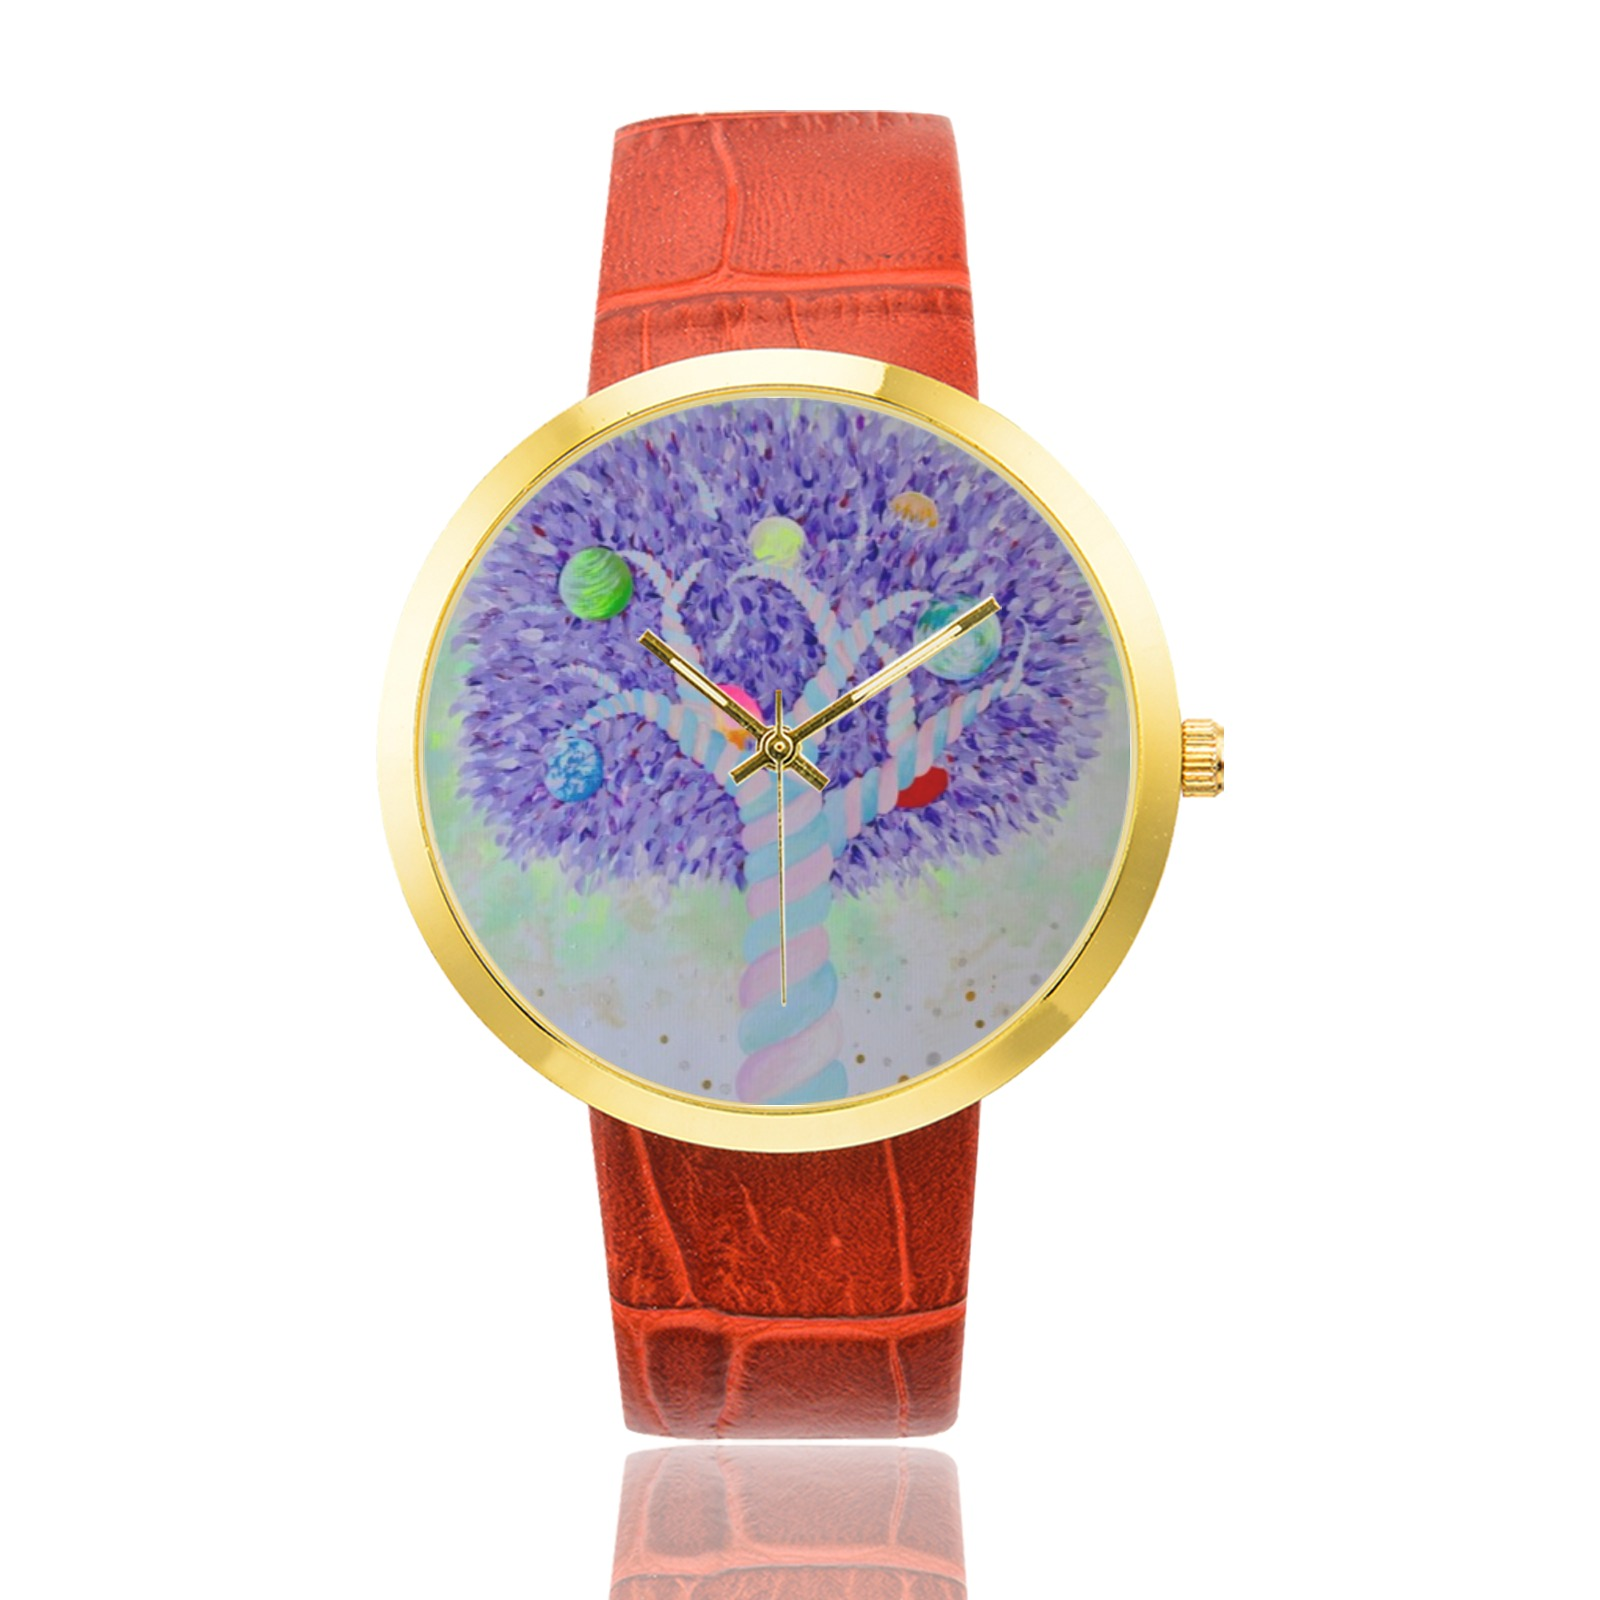 Planet Tree Women's Golden Leather Strap Watch(Model 212)